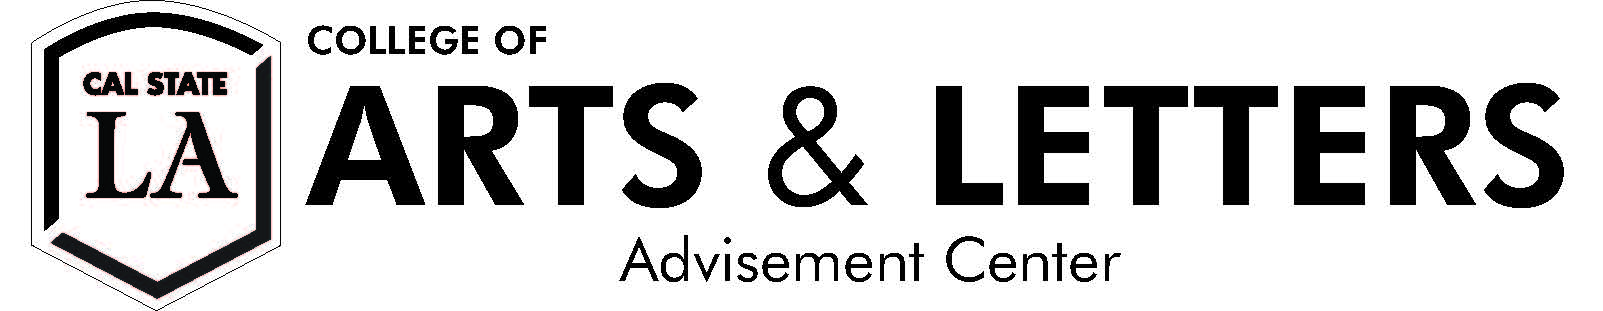 College of Arts and Letters Advisement Center